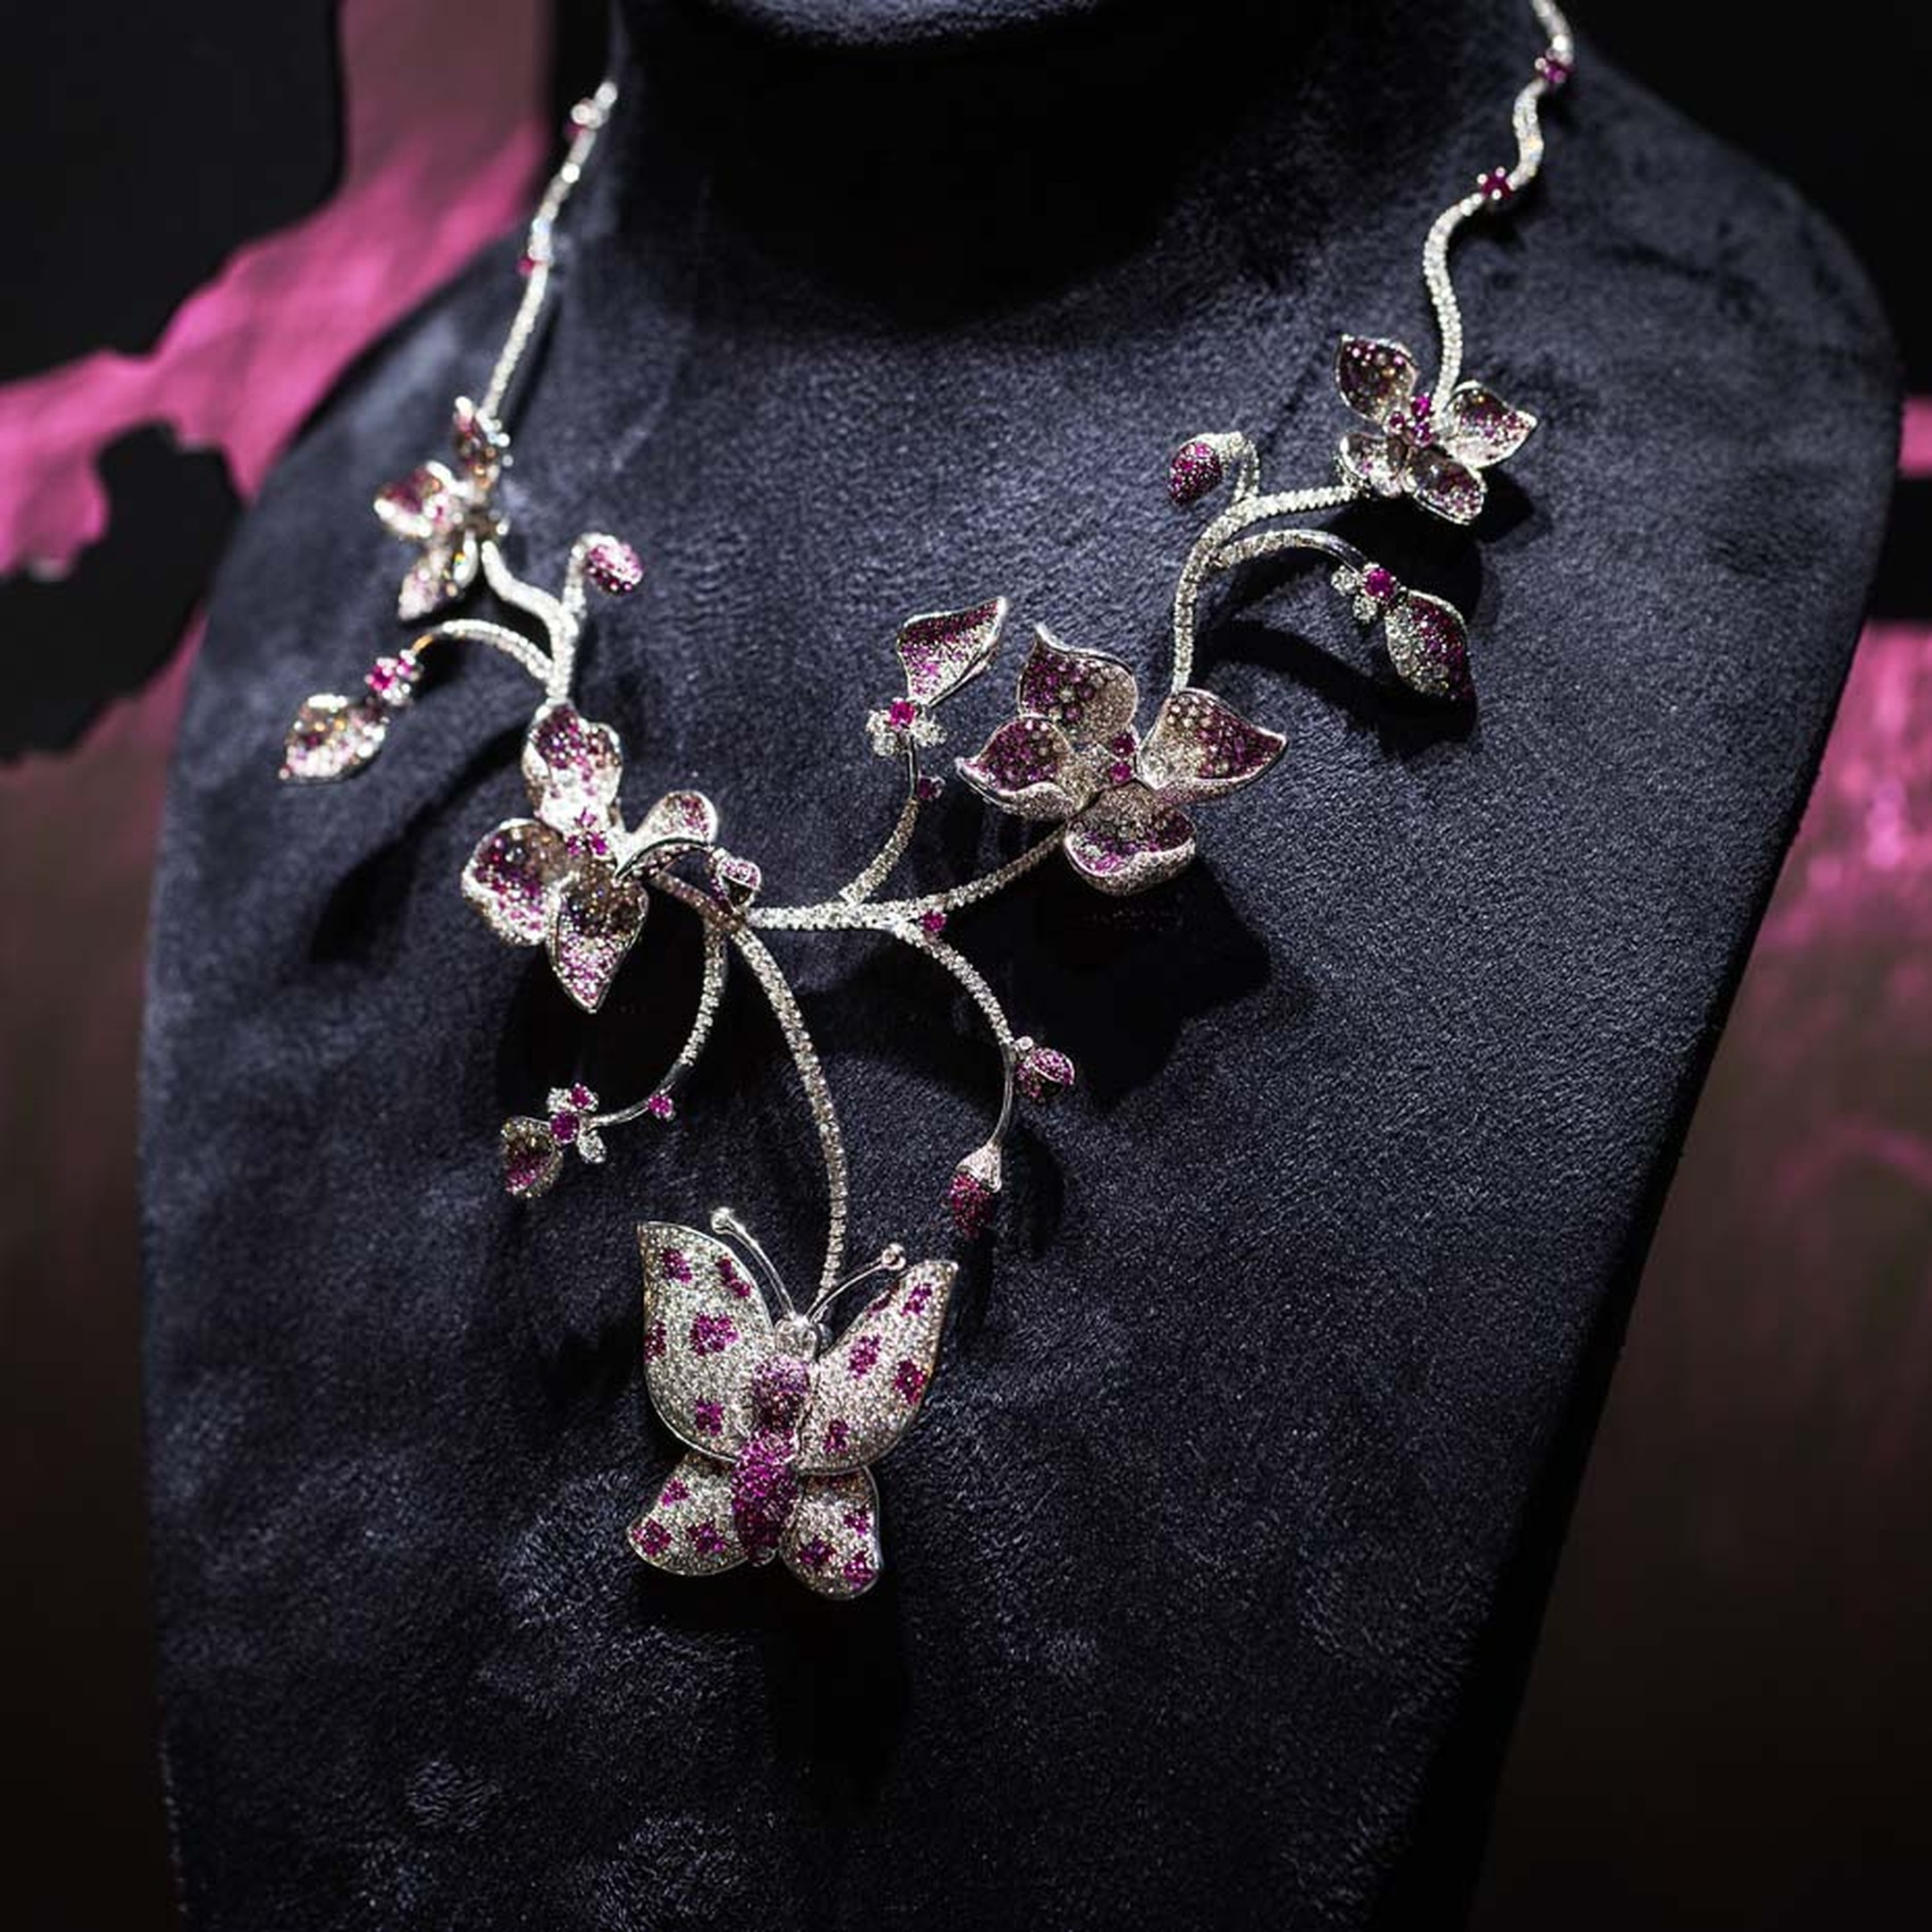 Shawish white gold Butterfly necklace with white and black diamonds and pink sapphires.